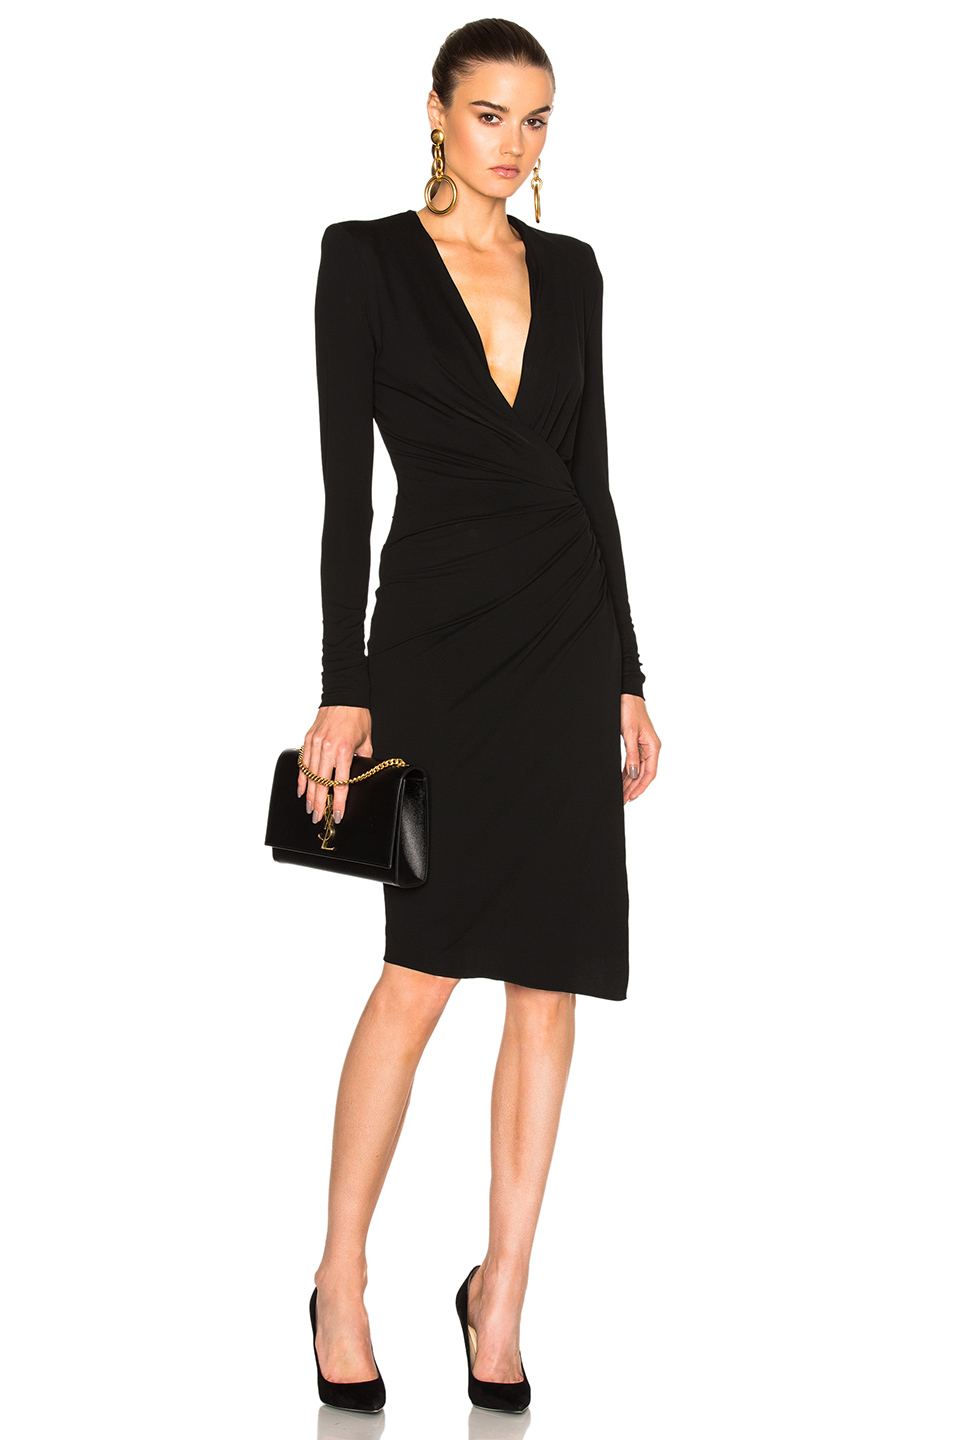 Alexandre Vauthier Stretch Jersey Dress in Black